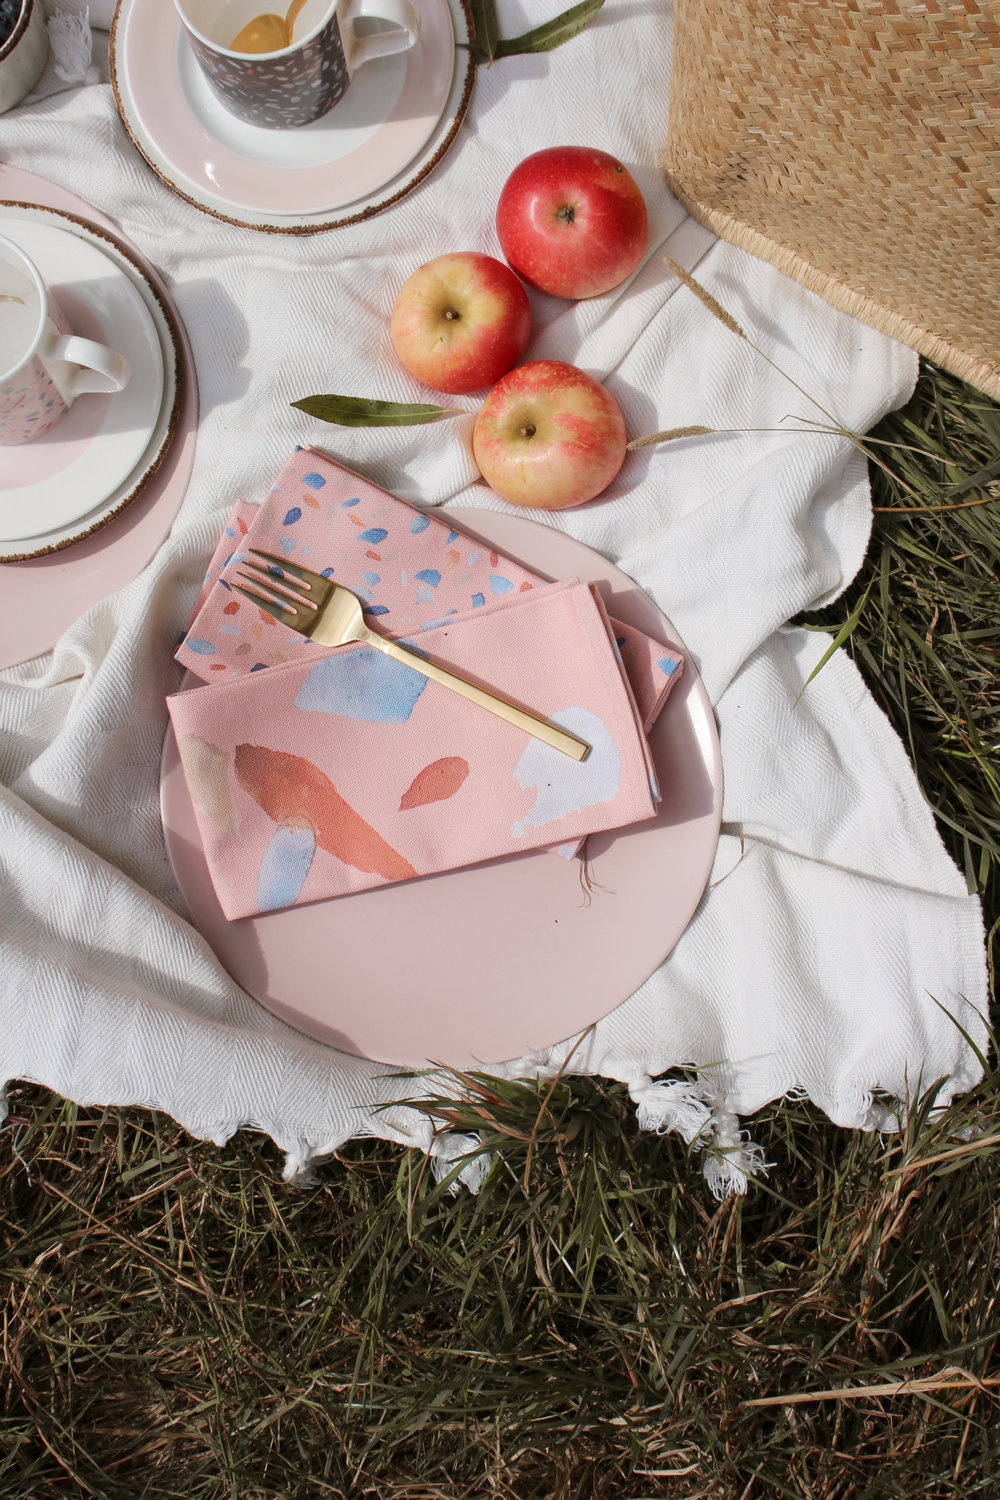 How to stye the perfect picnic this summer